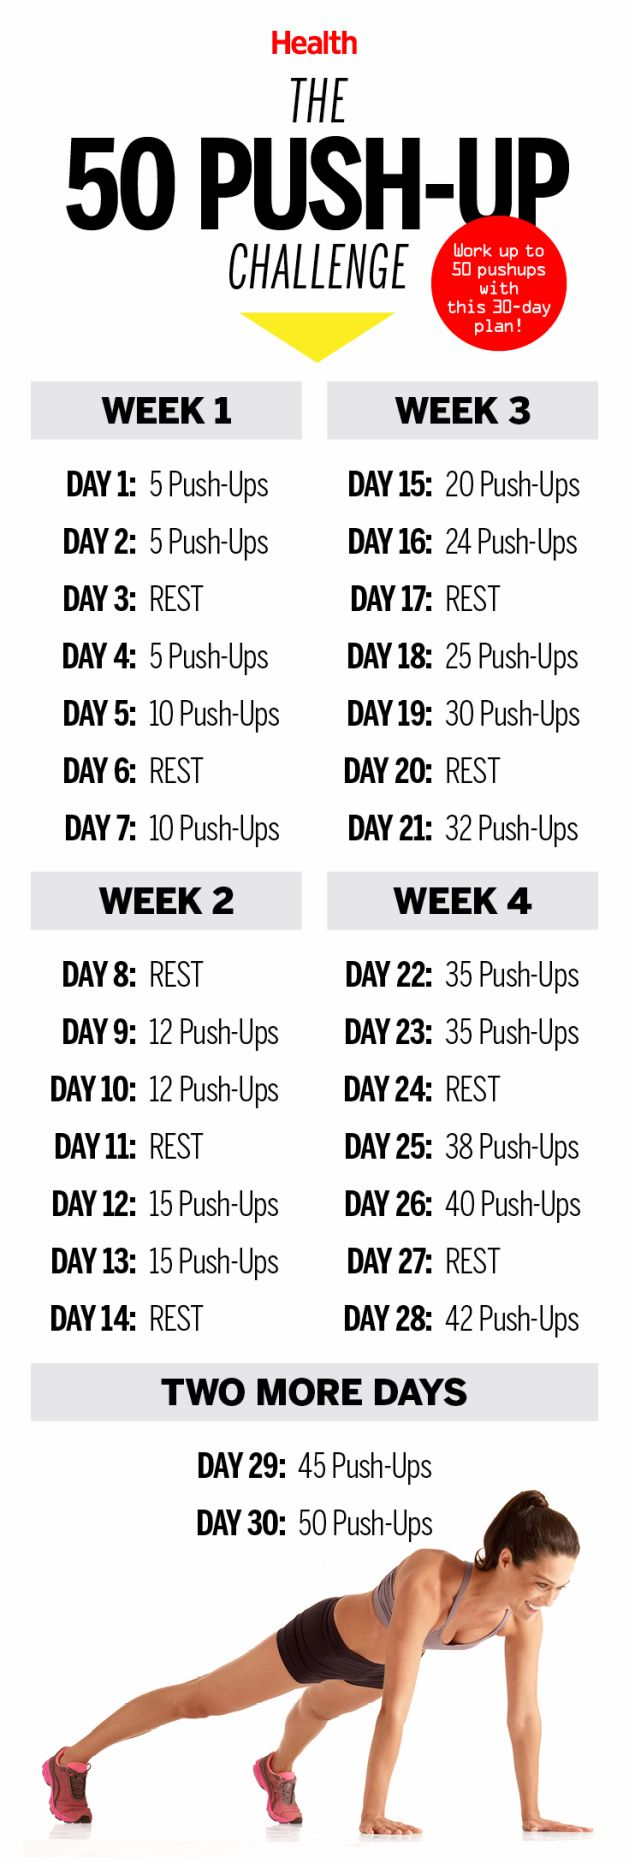 This 50 Push-Up Challenge Will Transform Your Body in 30 Days - Health News and Views - Health.com